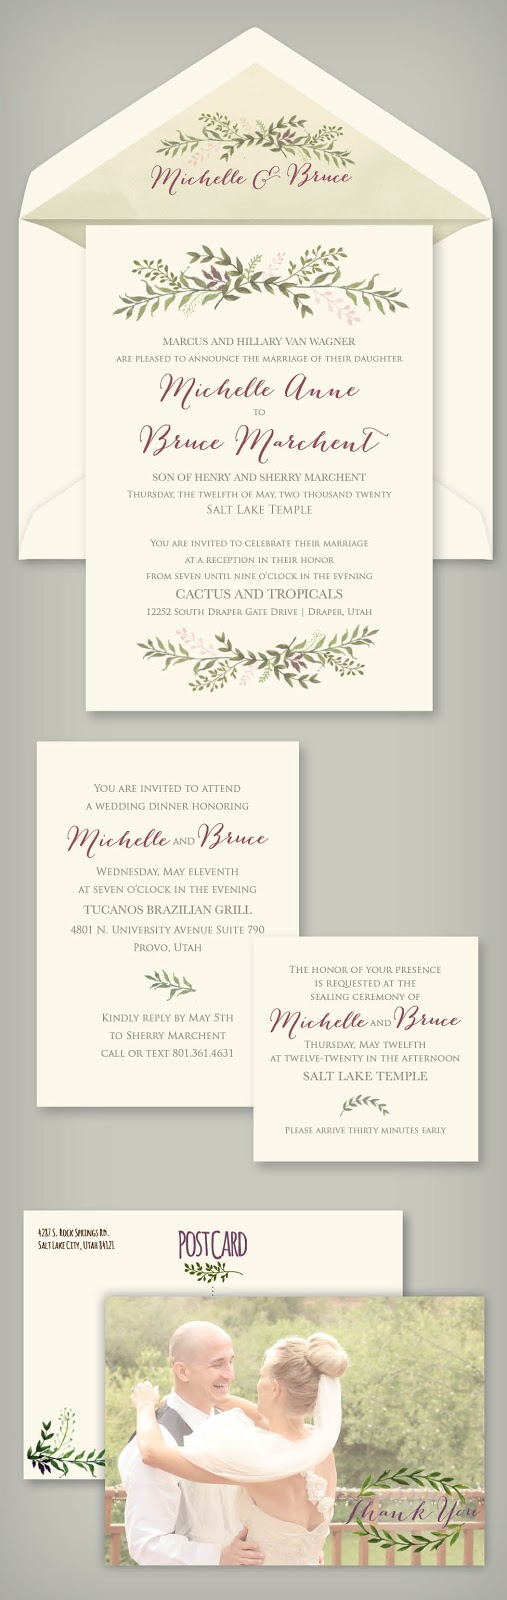 Wedding invitation blog for pricing information on the michelle invitation click here happy wedding planning christy monicamarmolfo Images